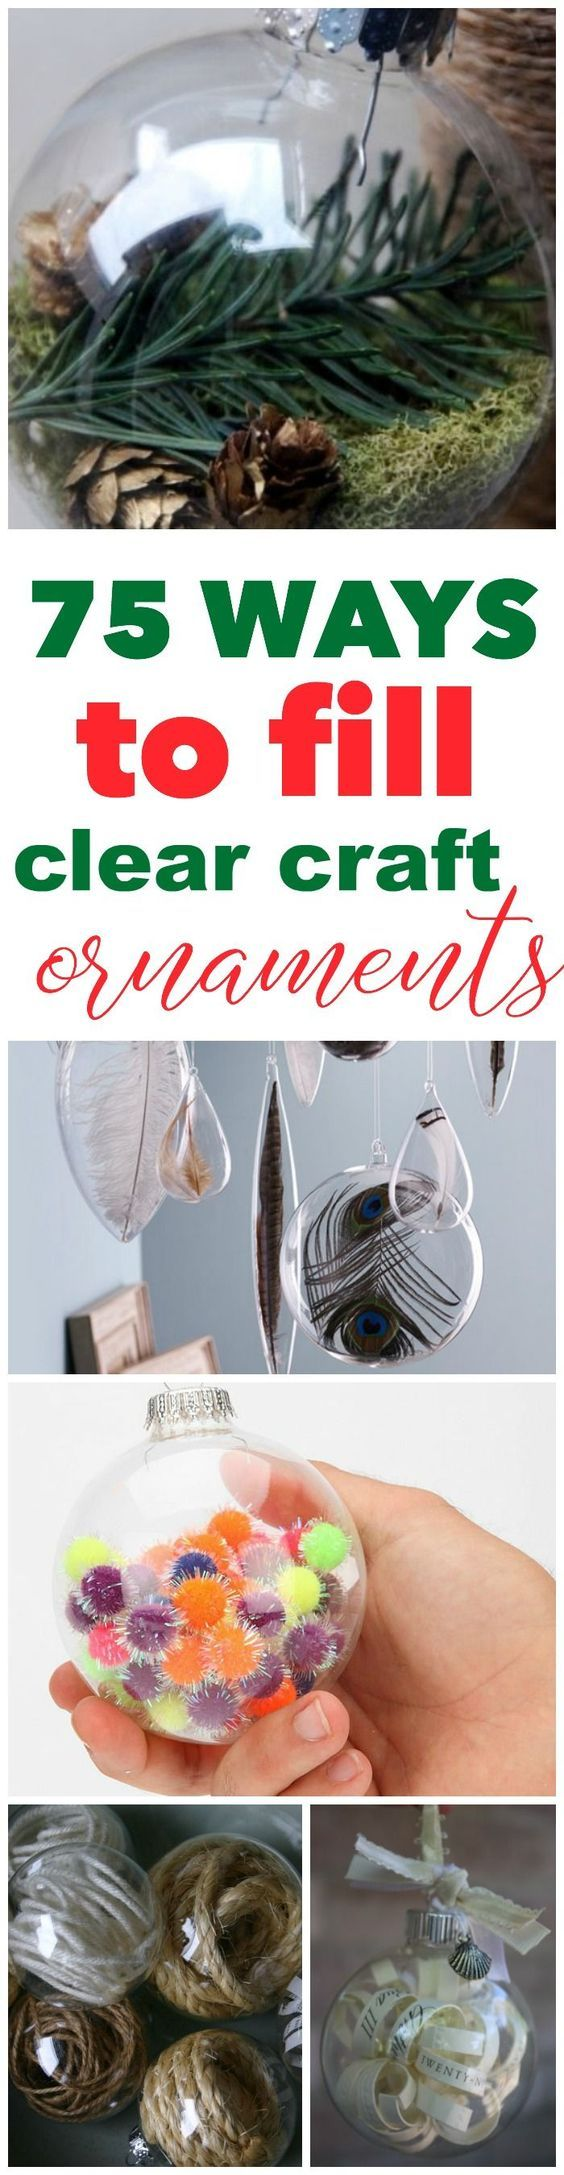 Clear christmas bulbs for crafting - 75 Ways To Fill Clear Glass Ornaments Homemade Christmas Ornaments Refunk My Junk Christmas